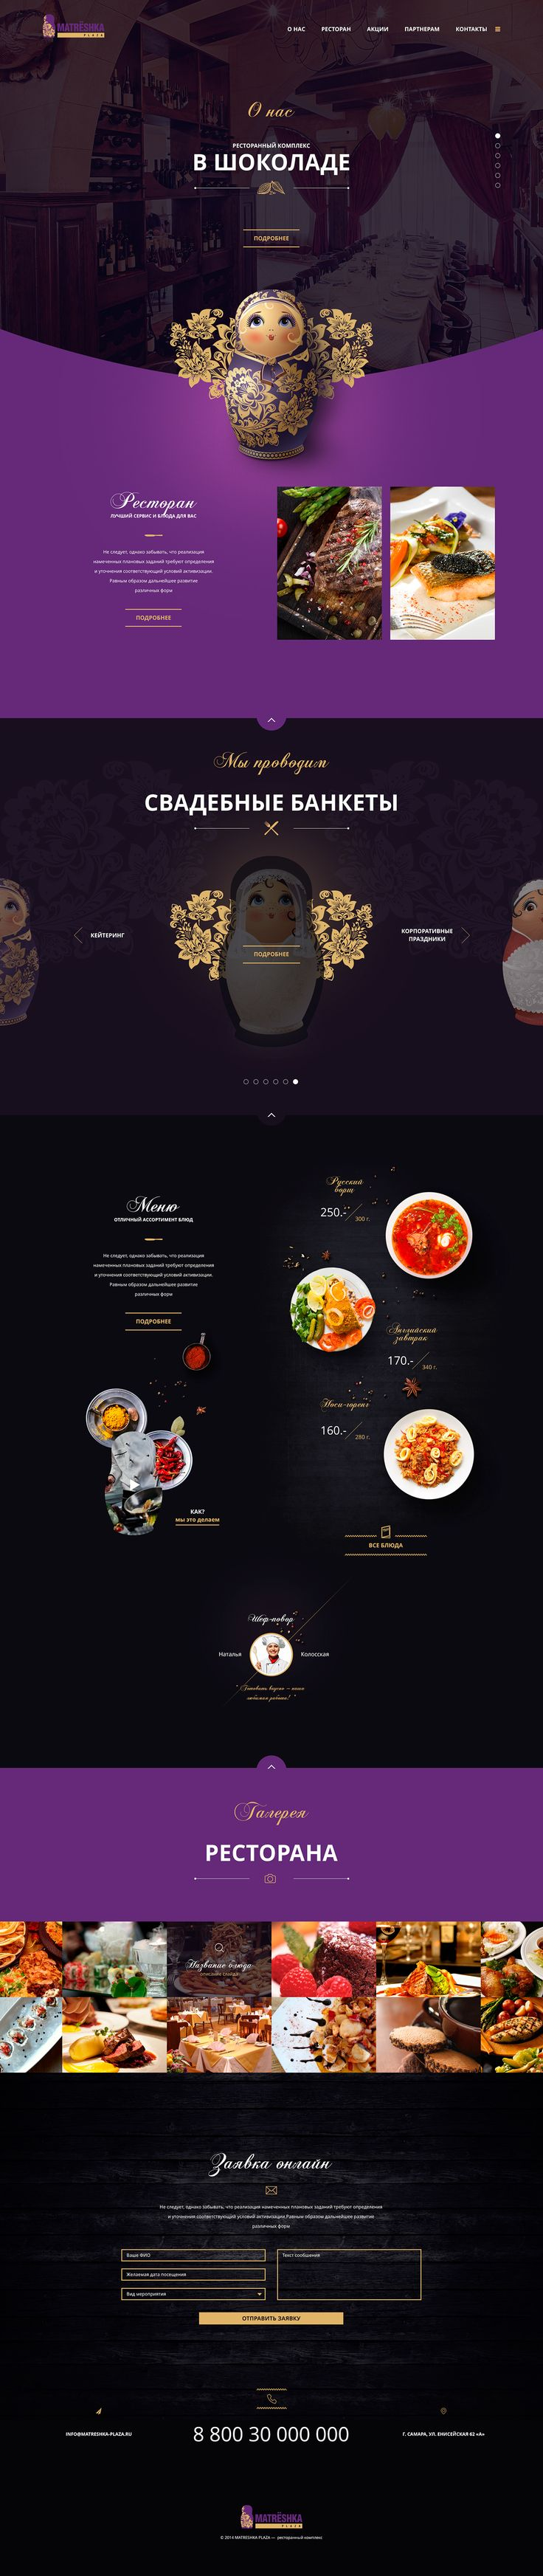 Restaurant complex on Behance